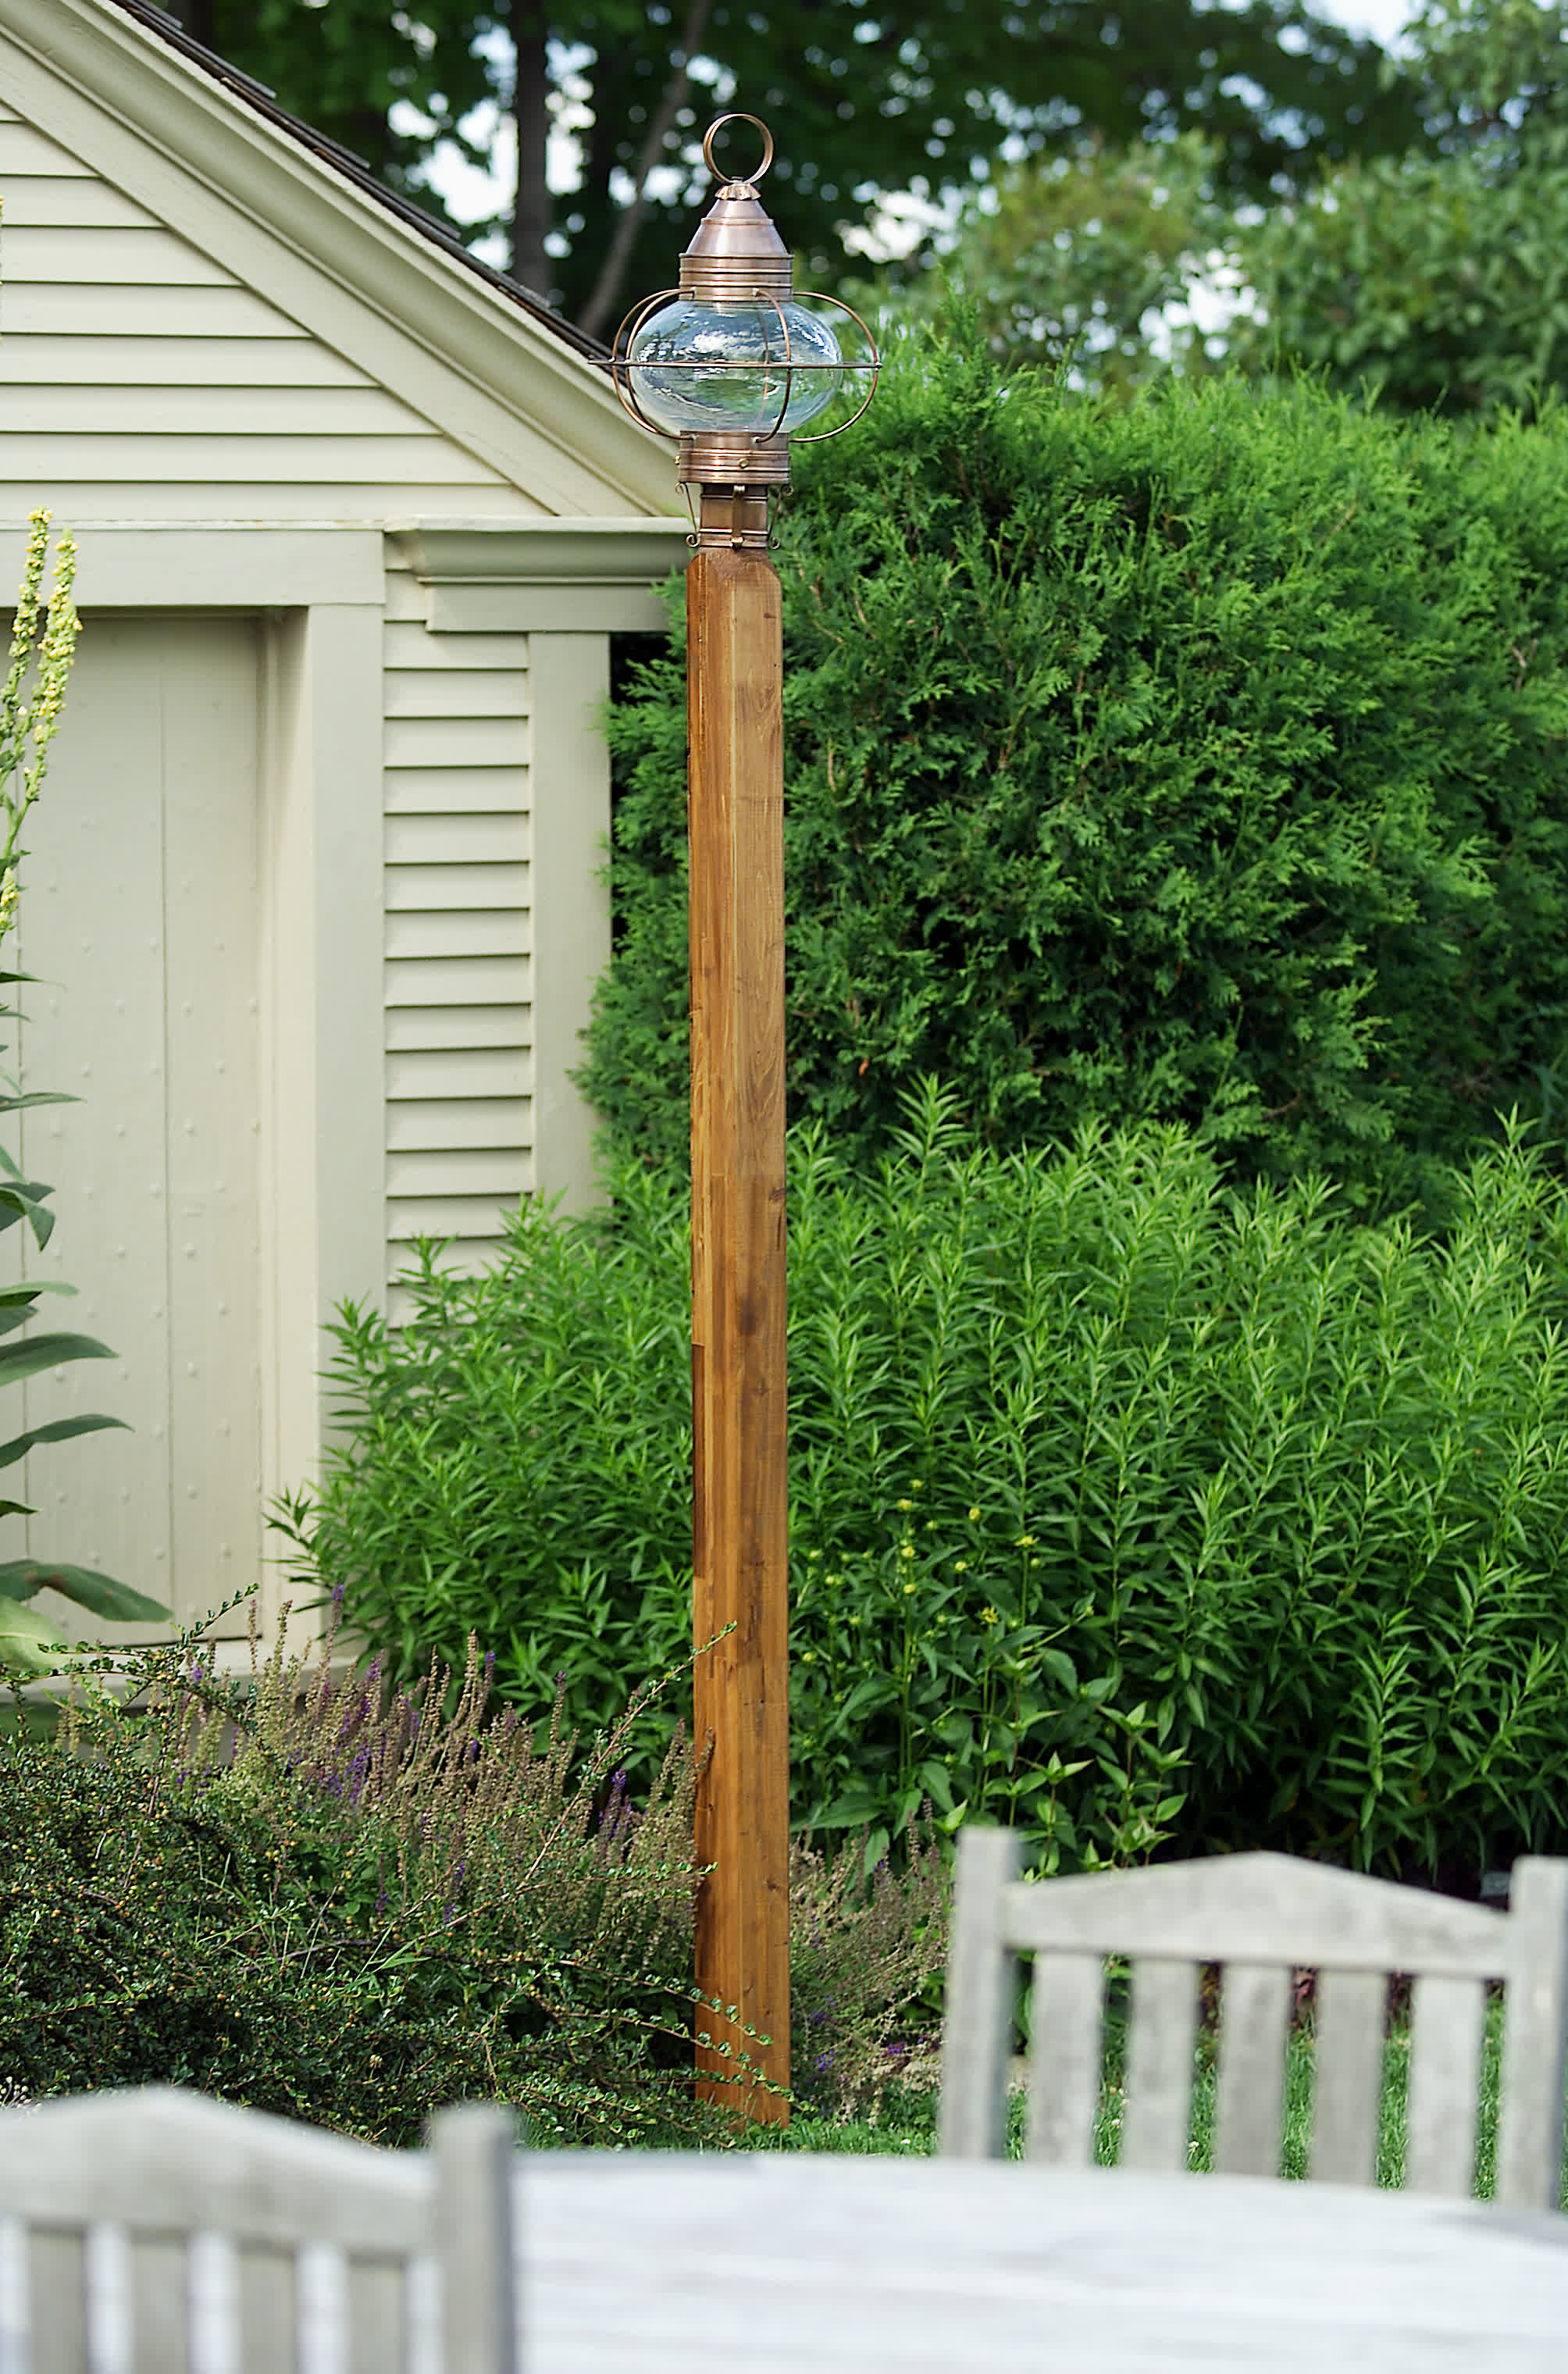 Hammerworks Colonial Onion Post Lantern Handcrafted With Solid Copper POL12 Shown On A Cedar Wooden Light Pole